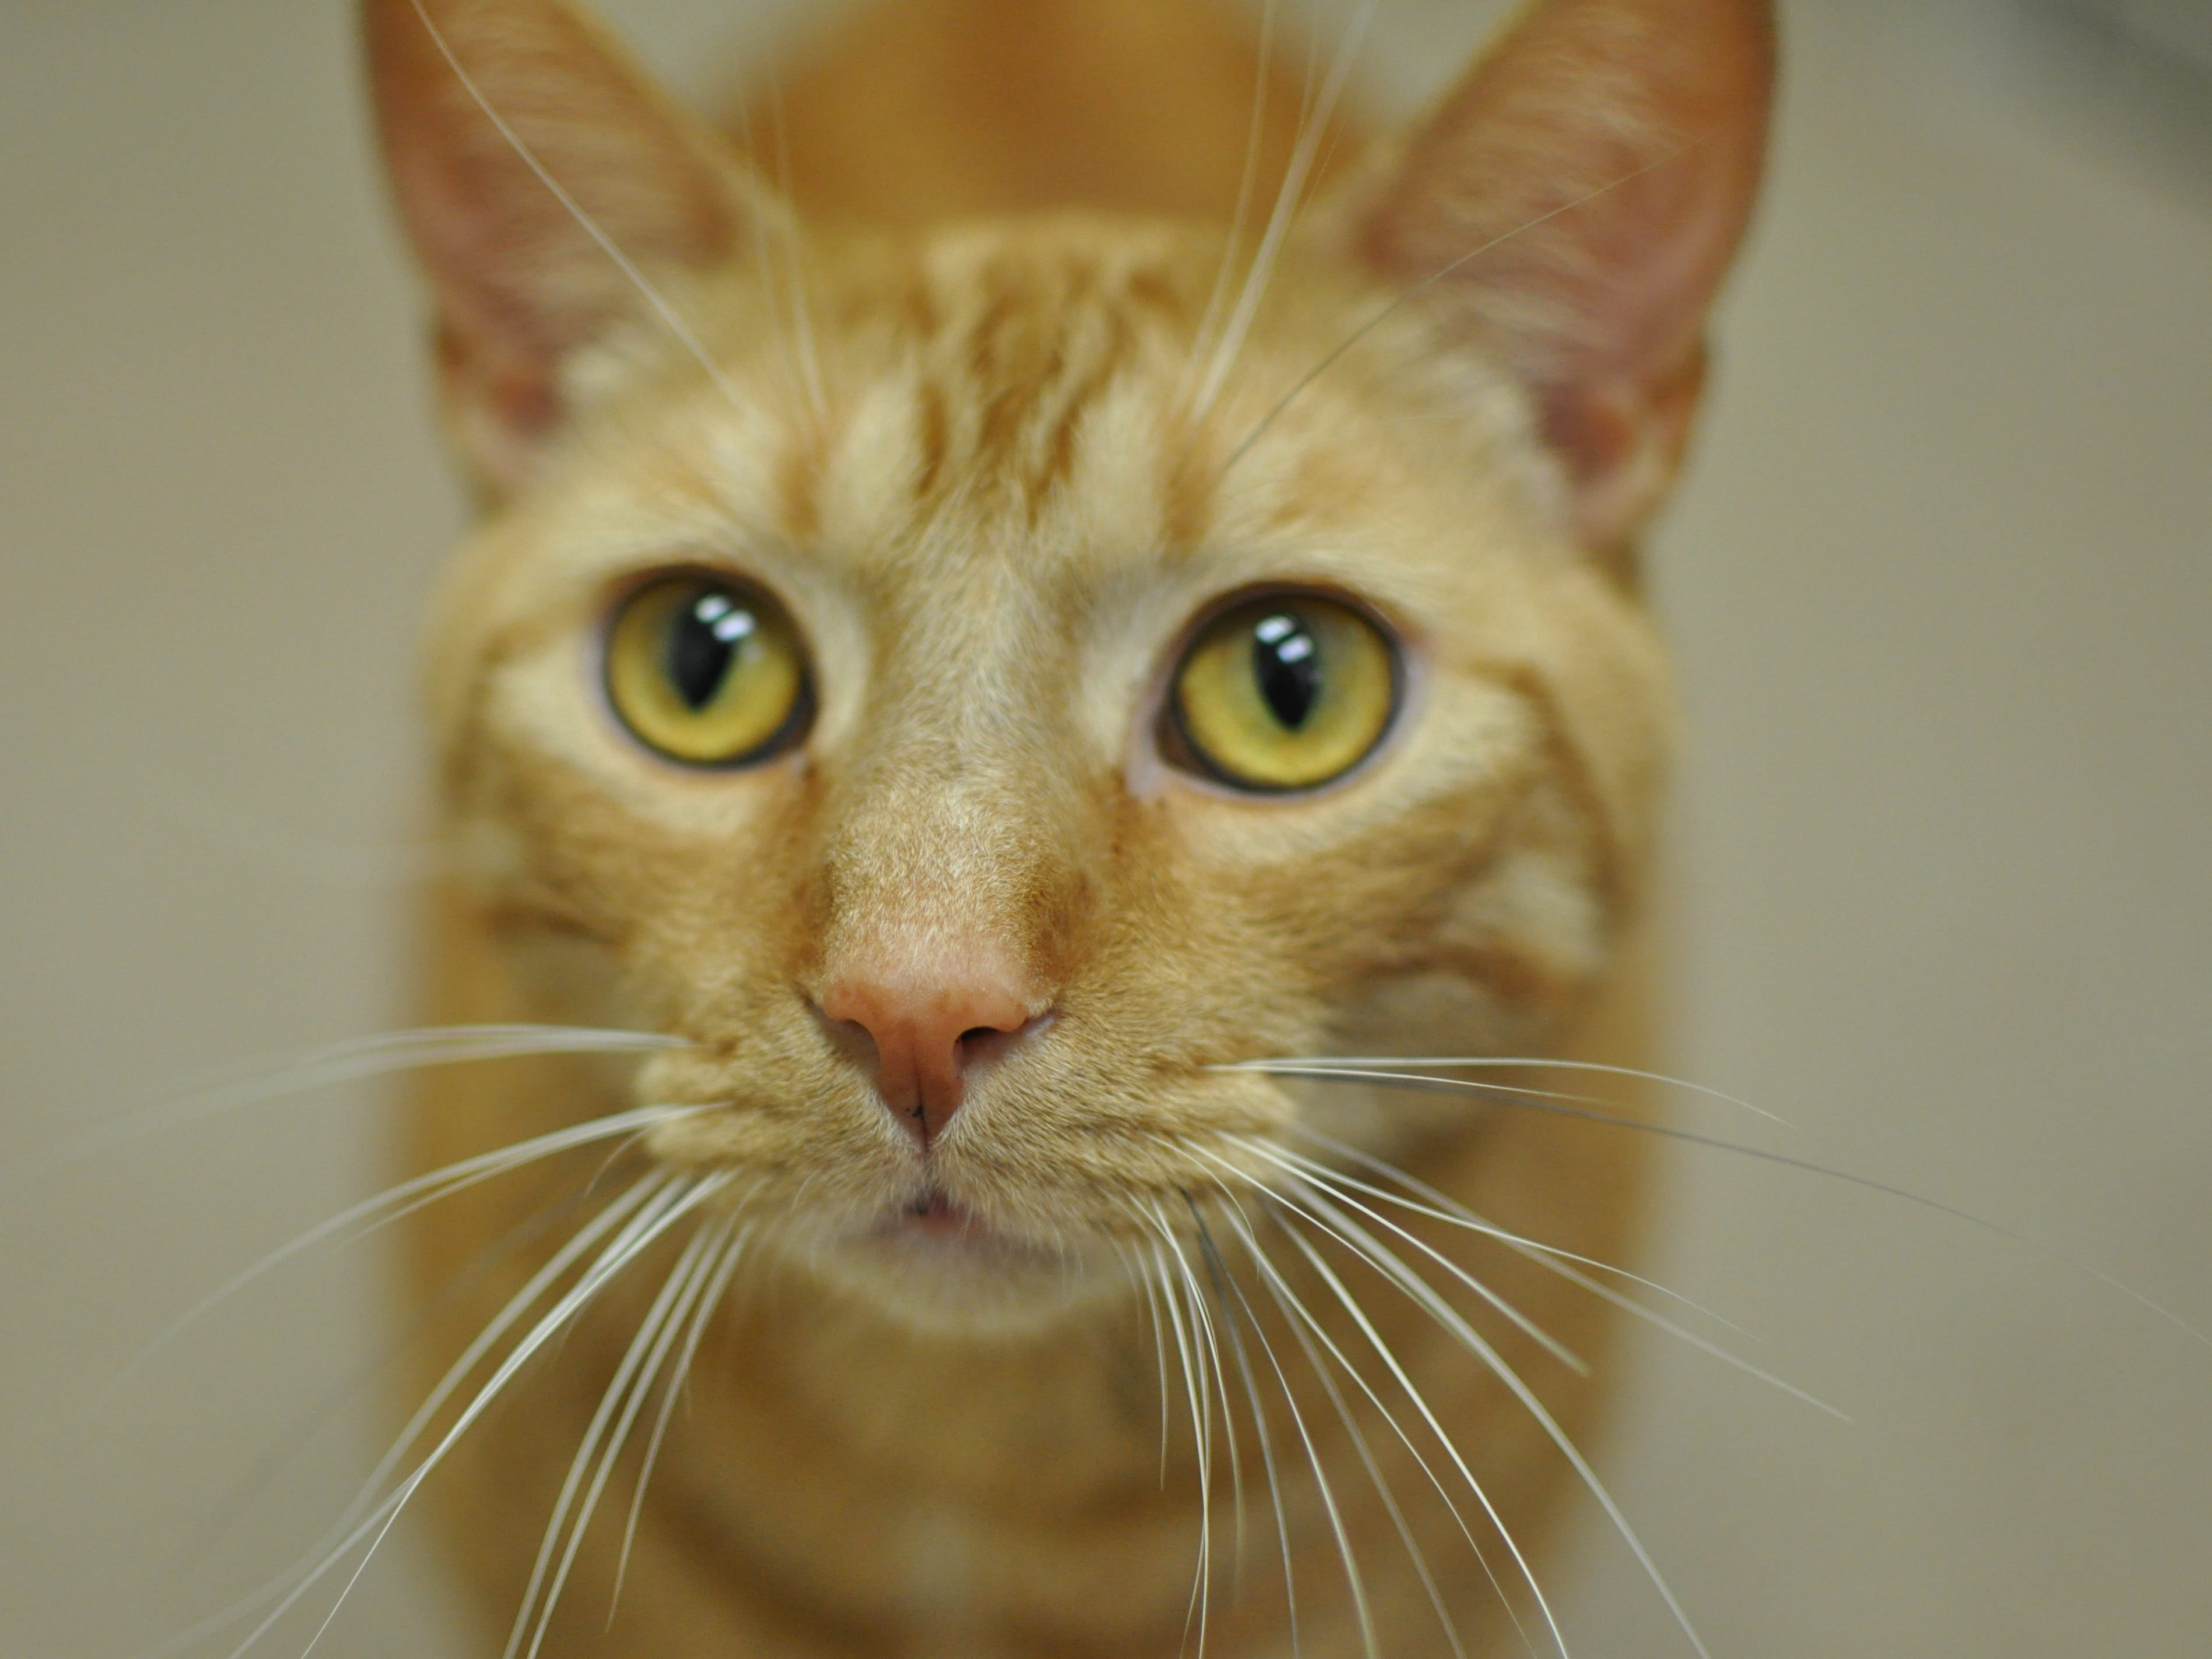 Pumpkin, 4, loves to be pet and rub on people's legs for attention. He is neutered.